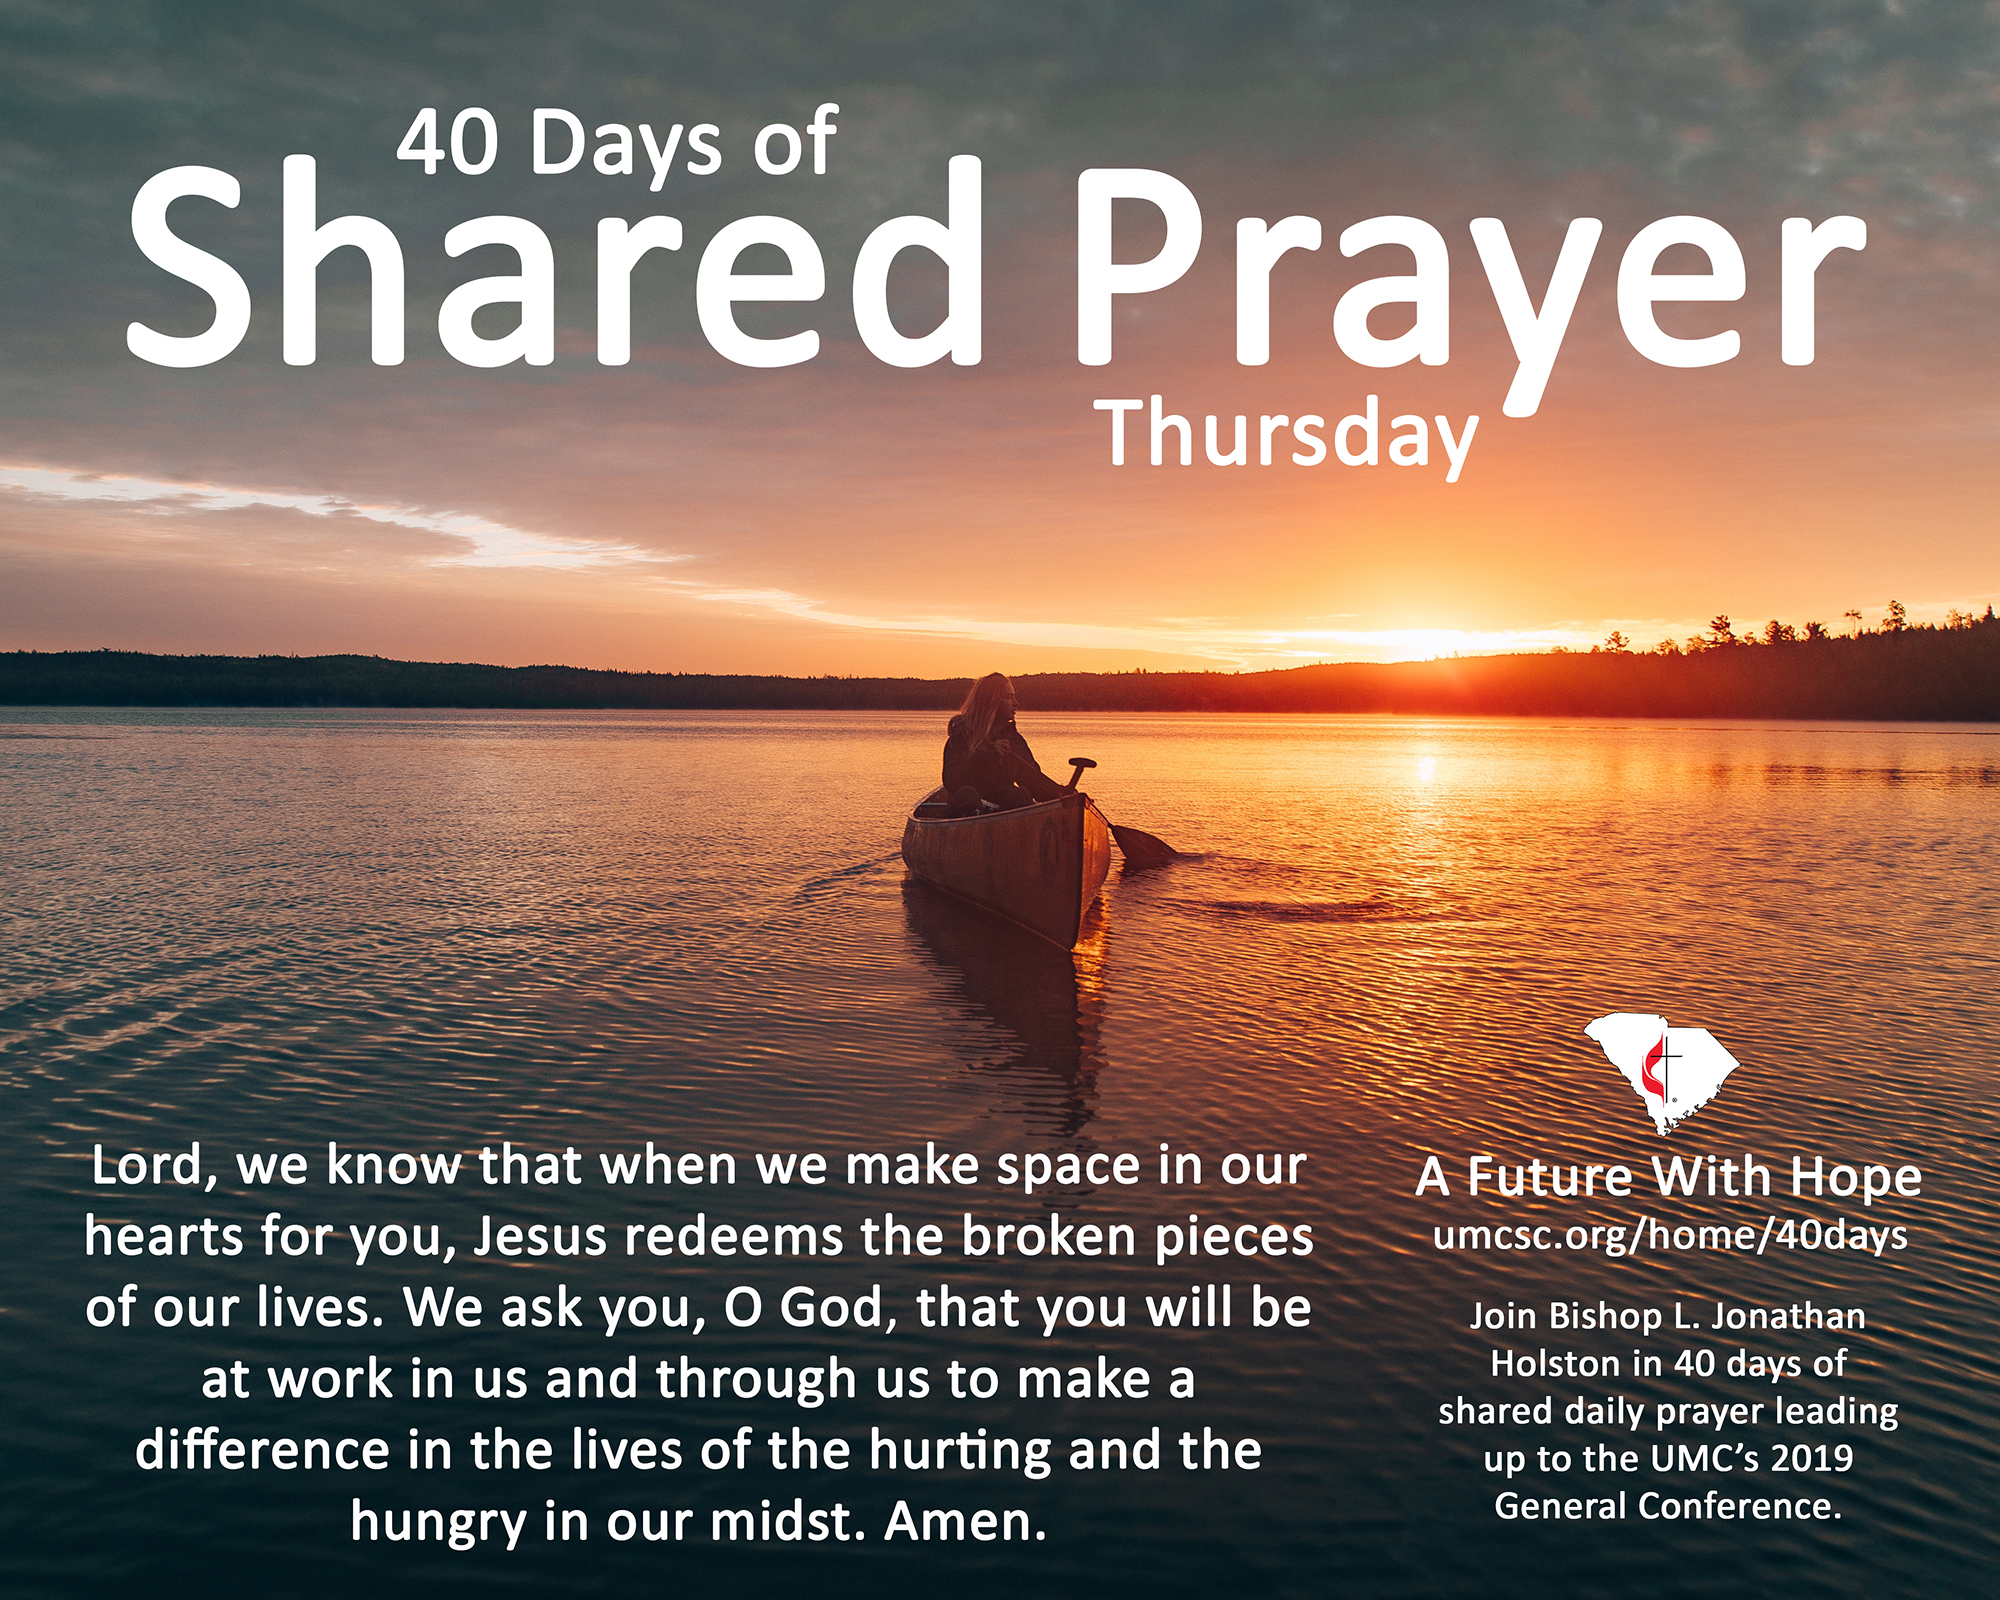 Bishop Holston: Come together for 40 days of daily prayer